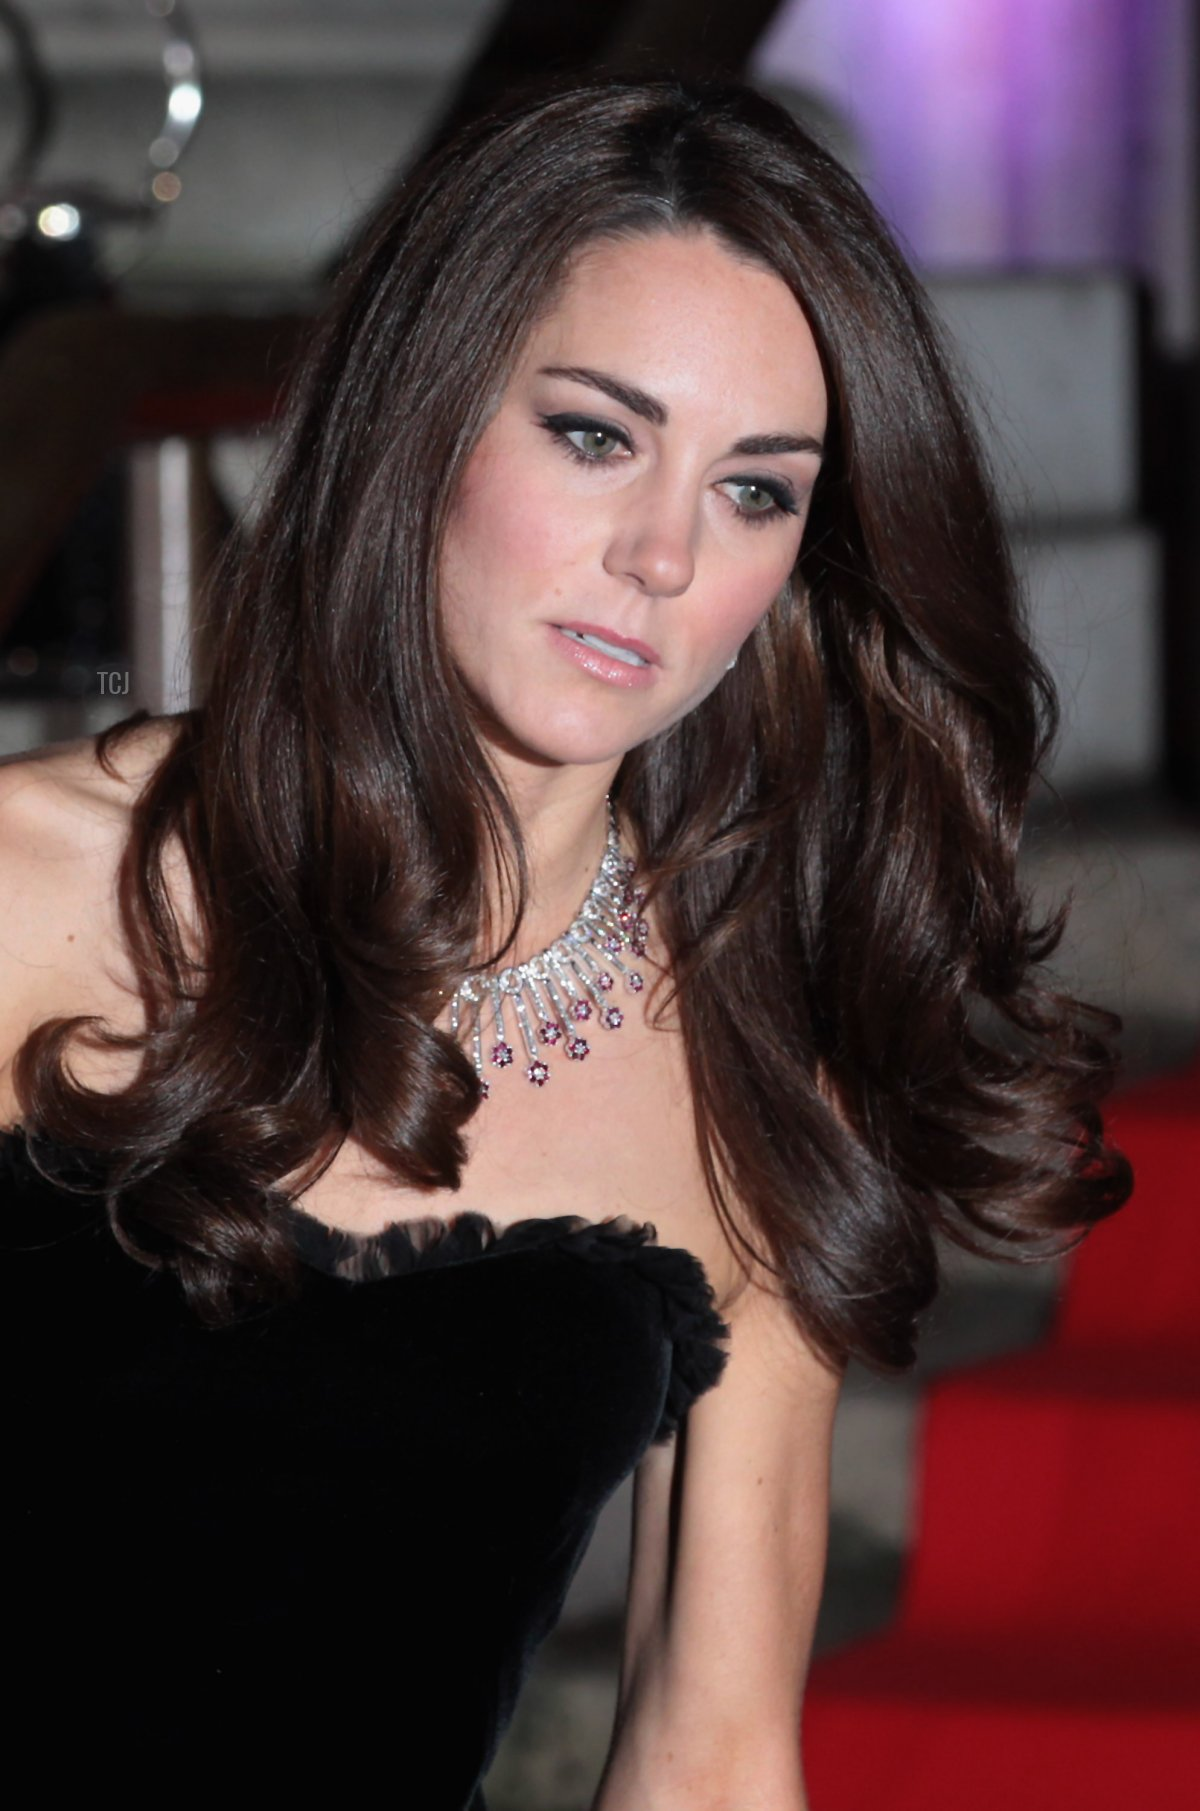 Catherine, Duchess of Cambridge attends the Sun Military Awards at the Imperial War Museum on December 19, 2011 in London, England